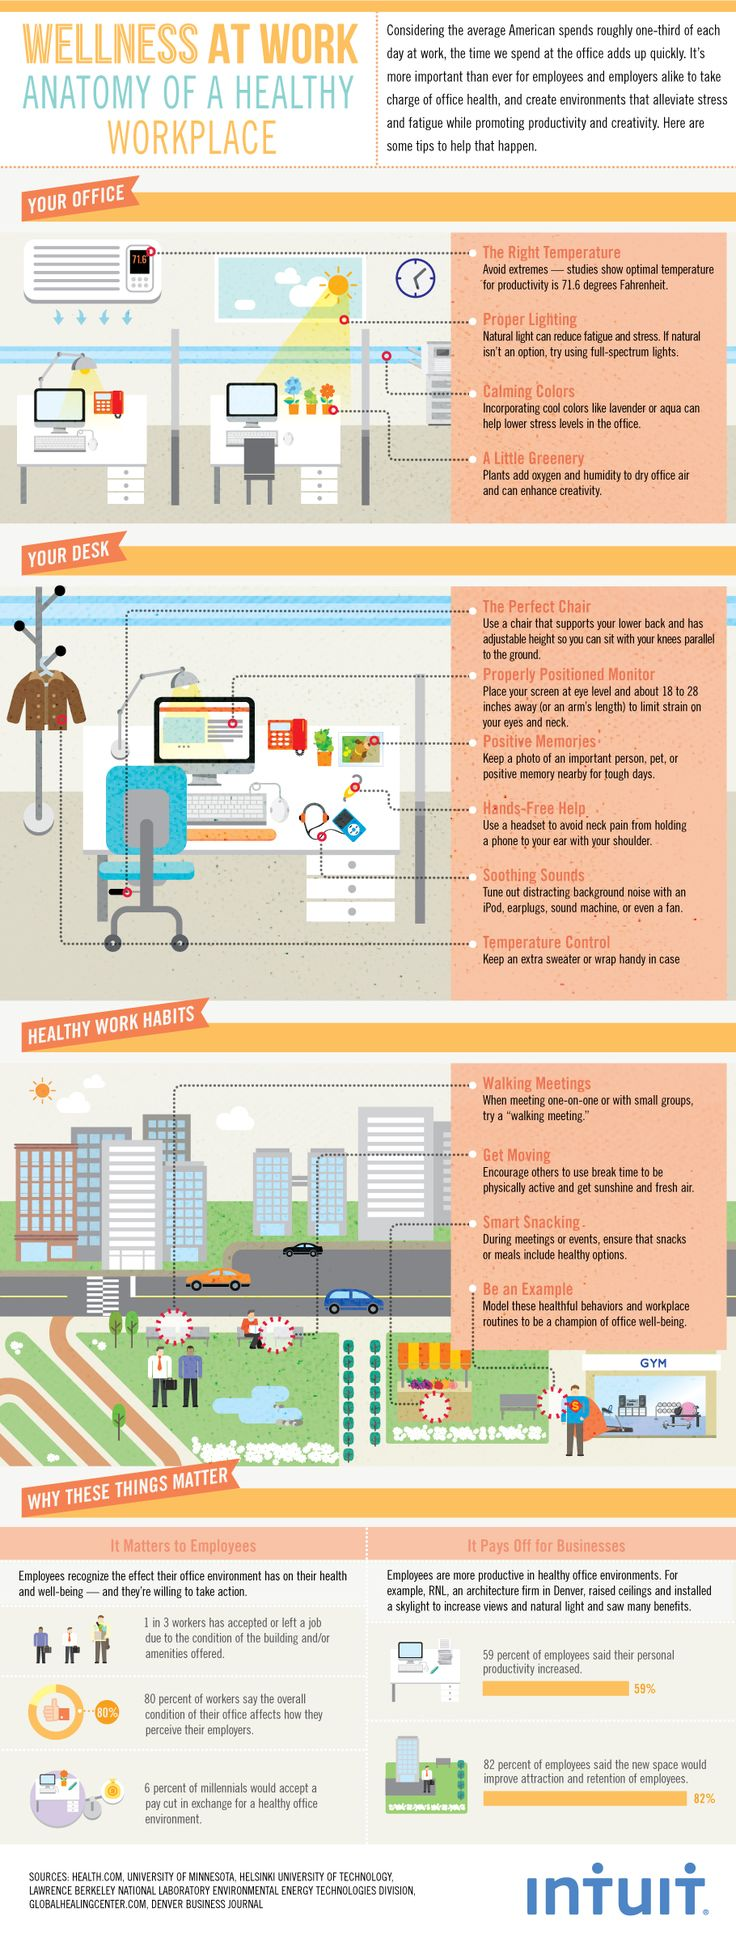 Top tips to staying stress free in the workplace infographic - Wellness At Work Anatomy Of A Healthy Workplace Infographic Holy Kaw